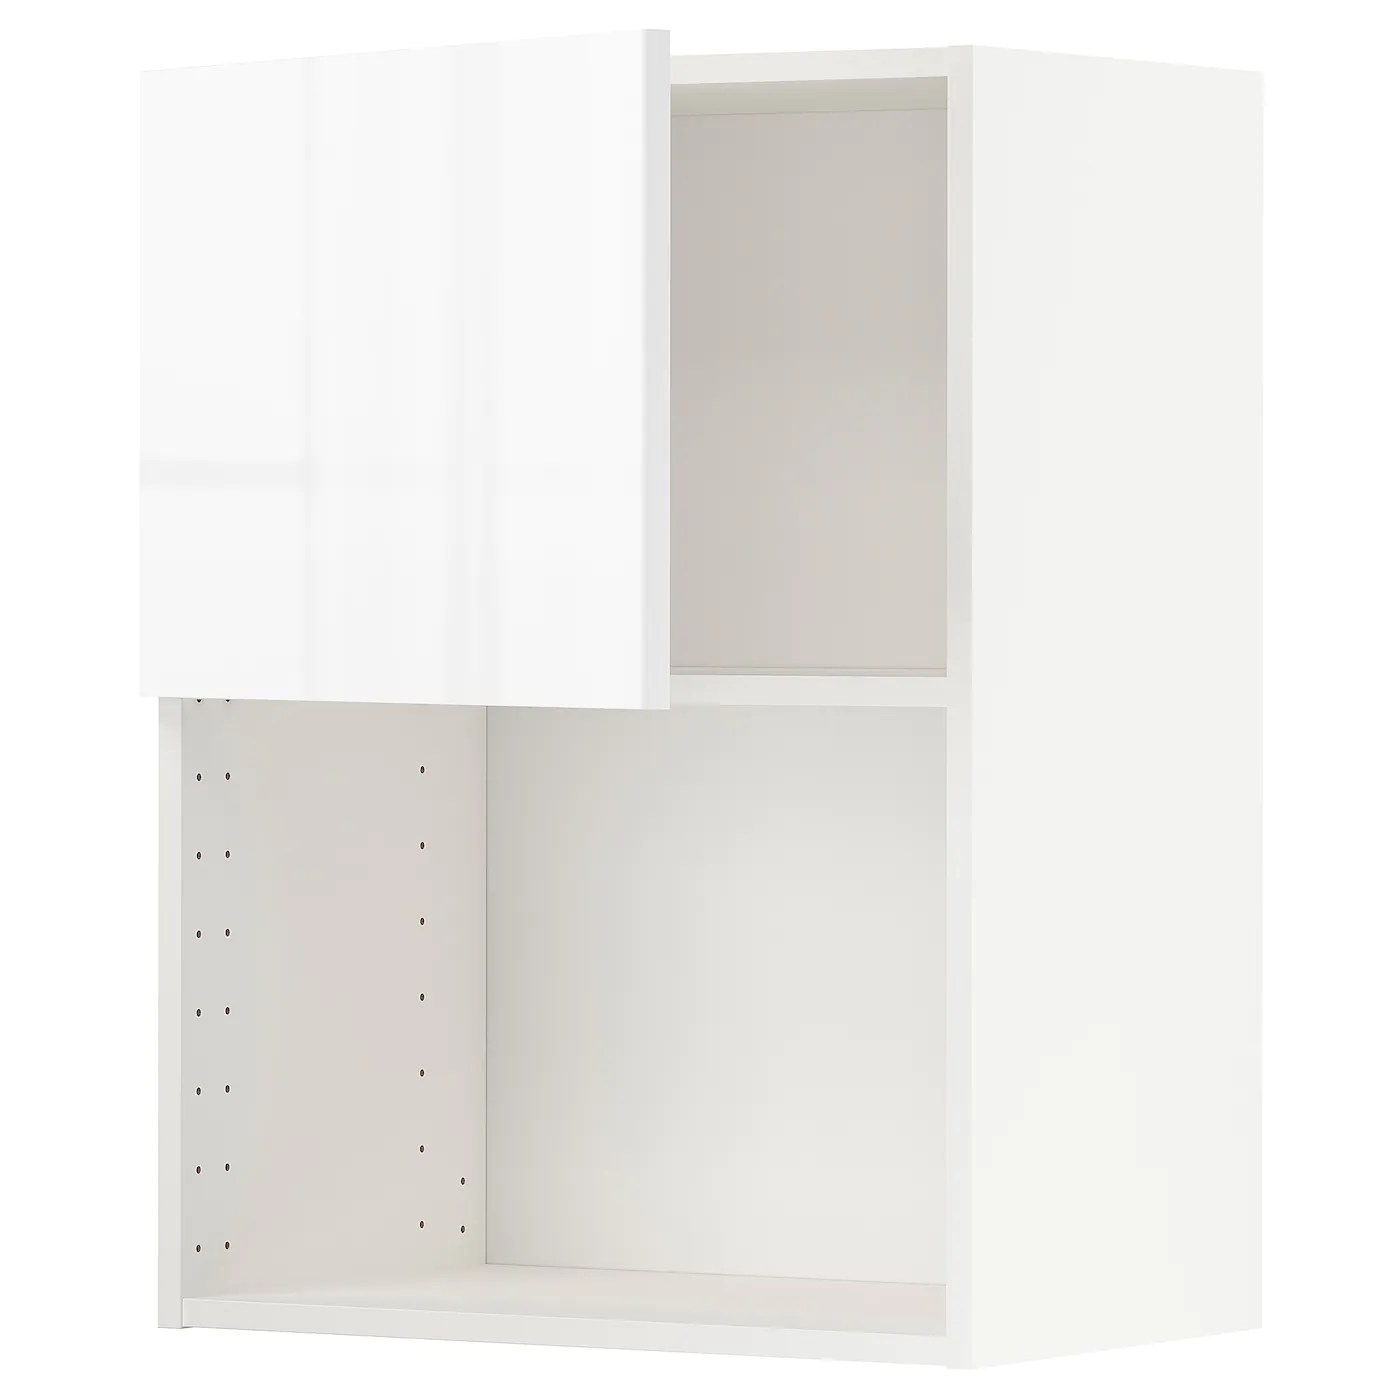 metod wall cabinet for microwave oven white ringhult white 60x37x80 cm 24x15x32